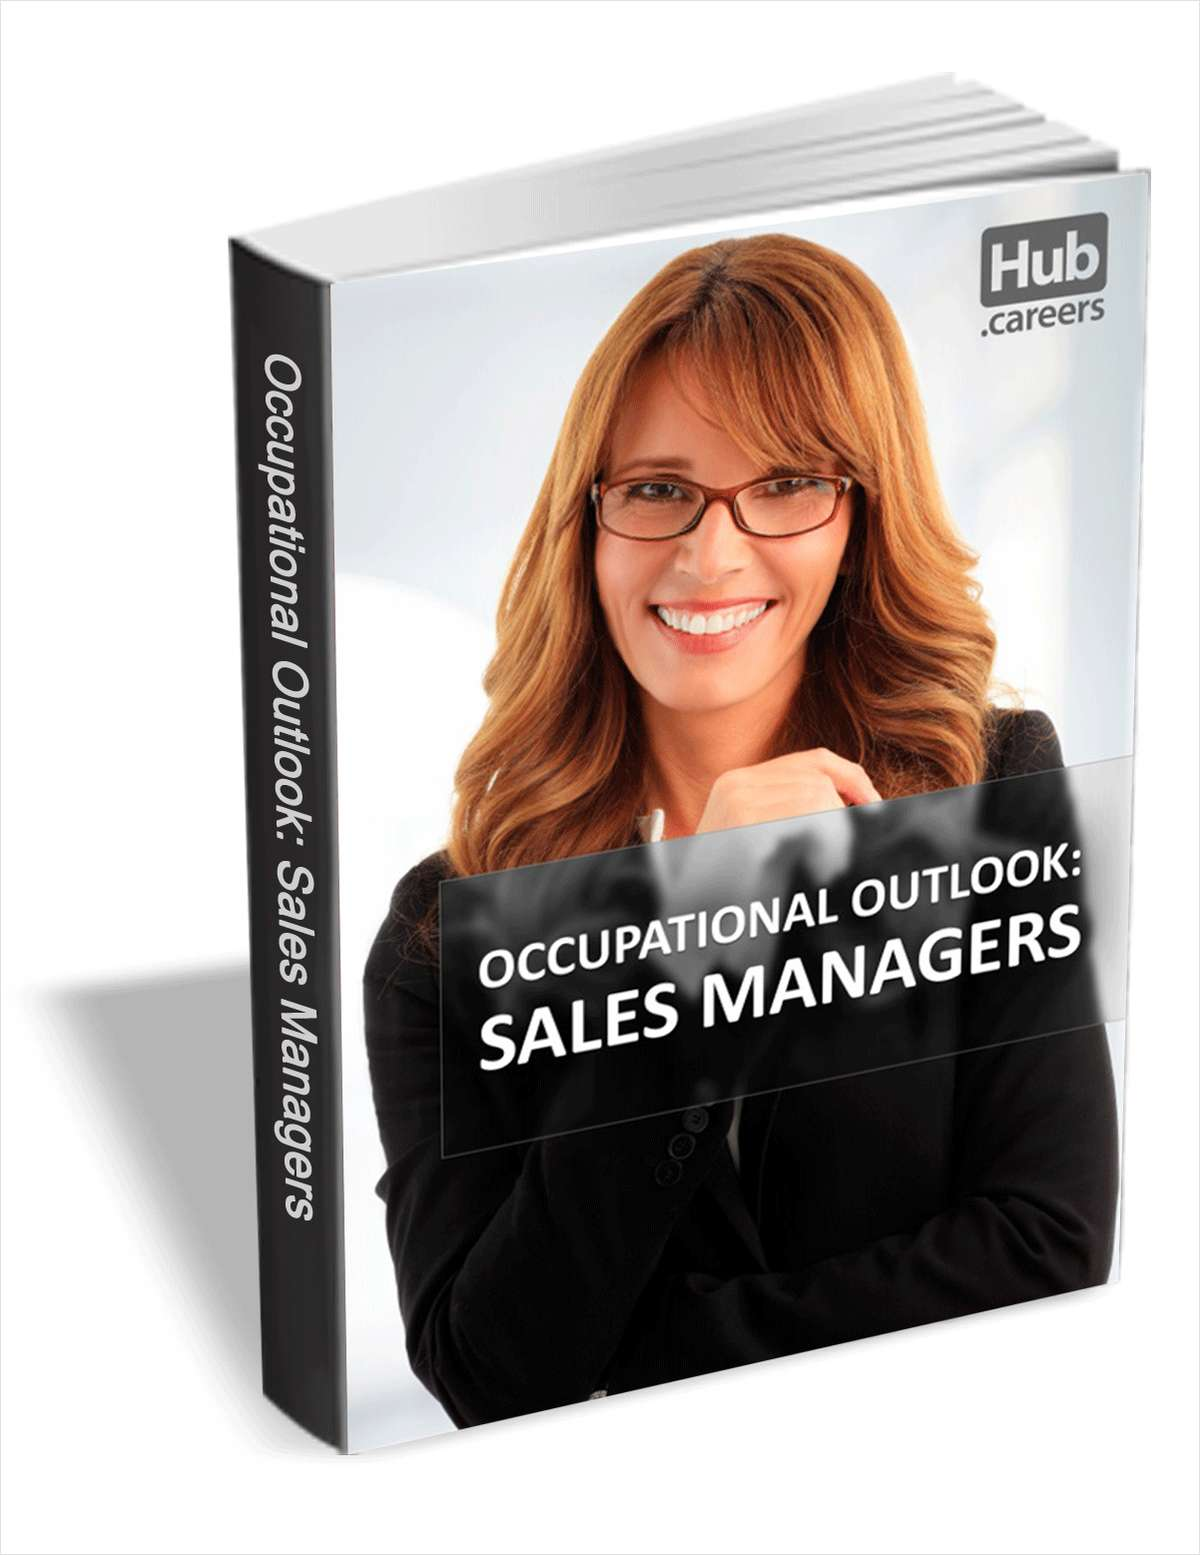 Sales Managers - Occupational Outlook